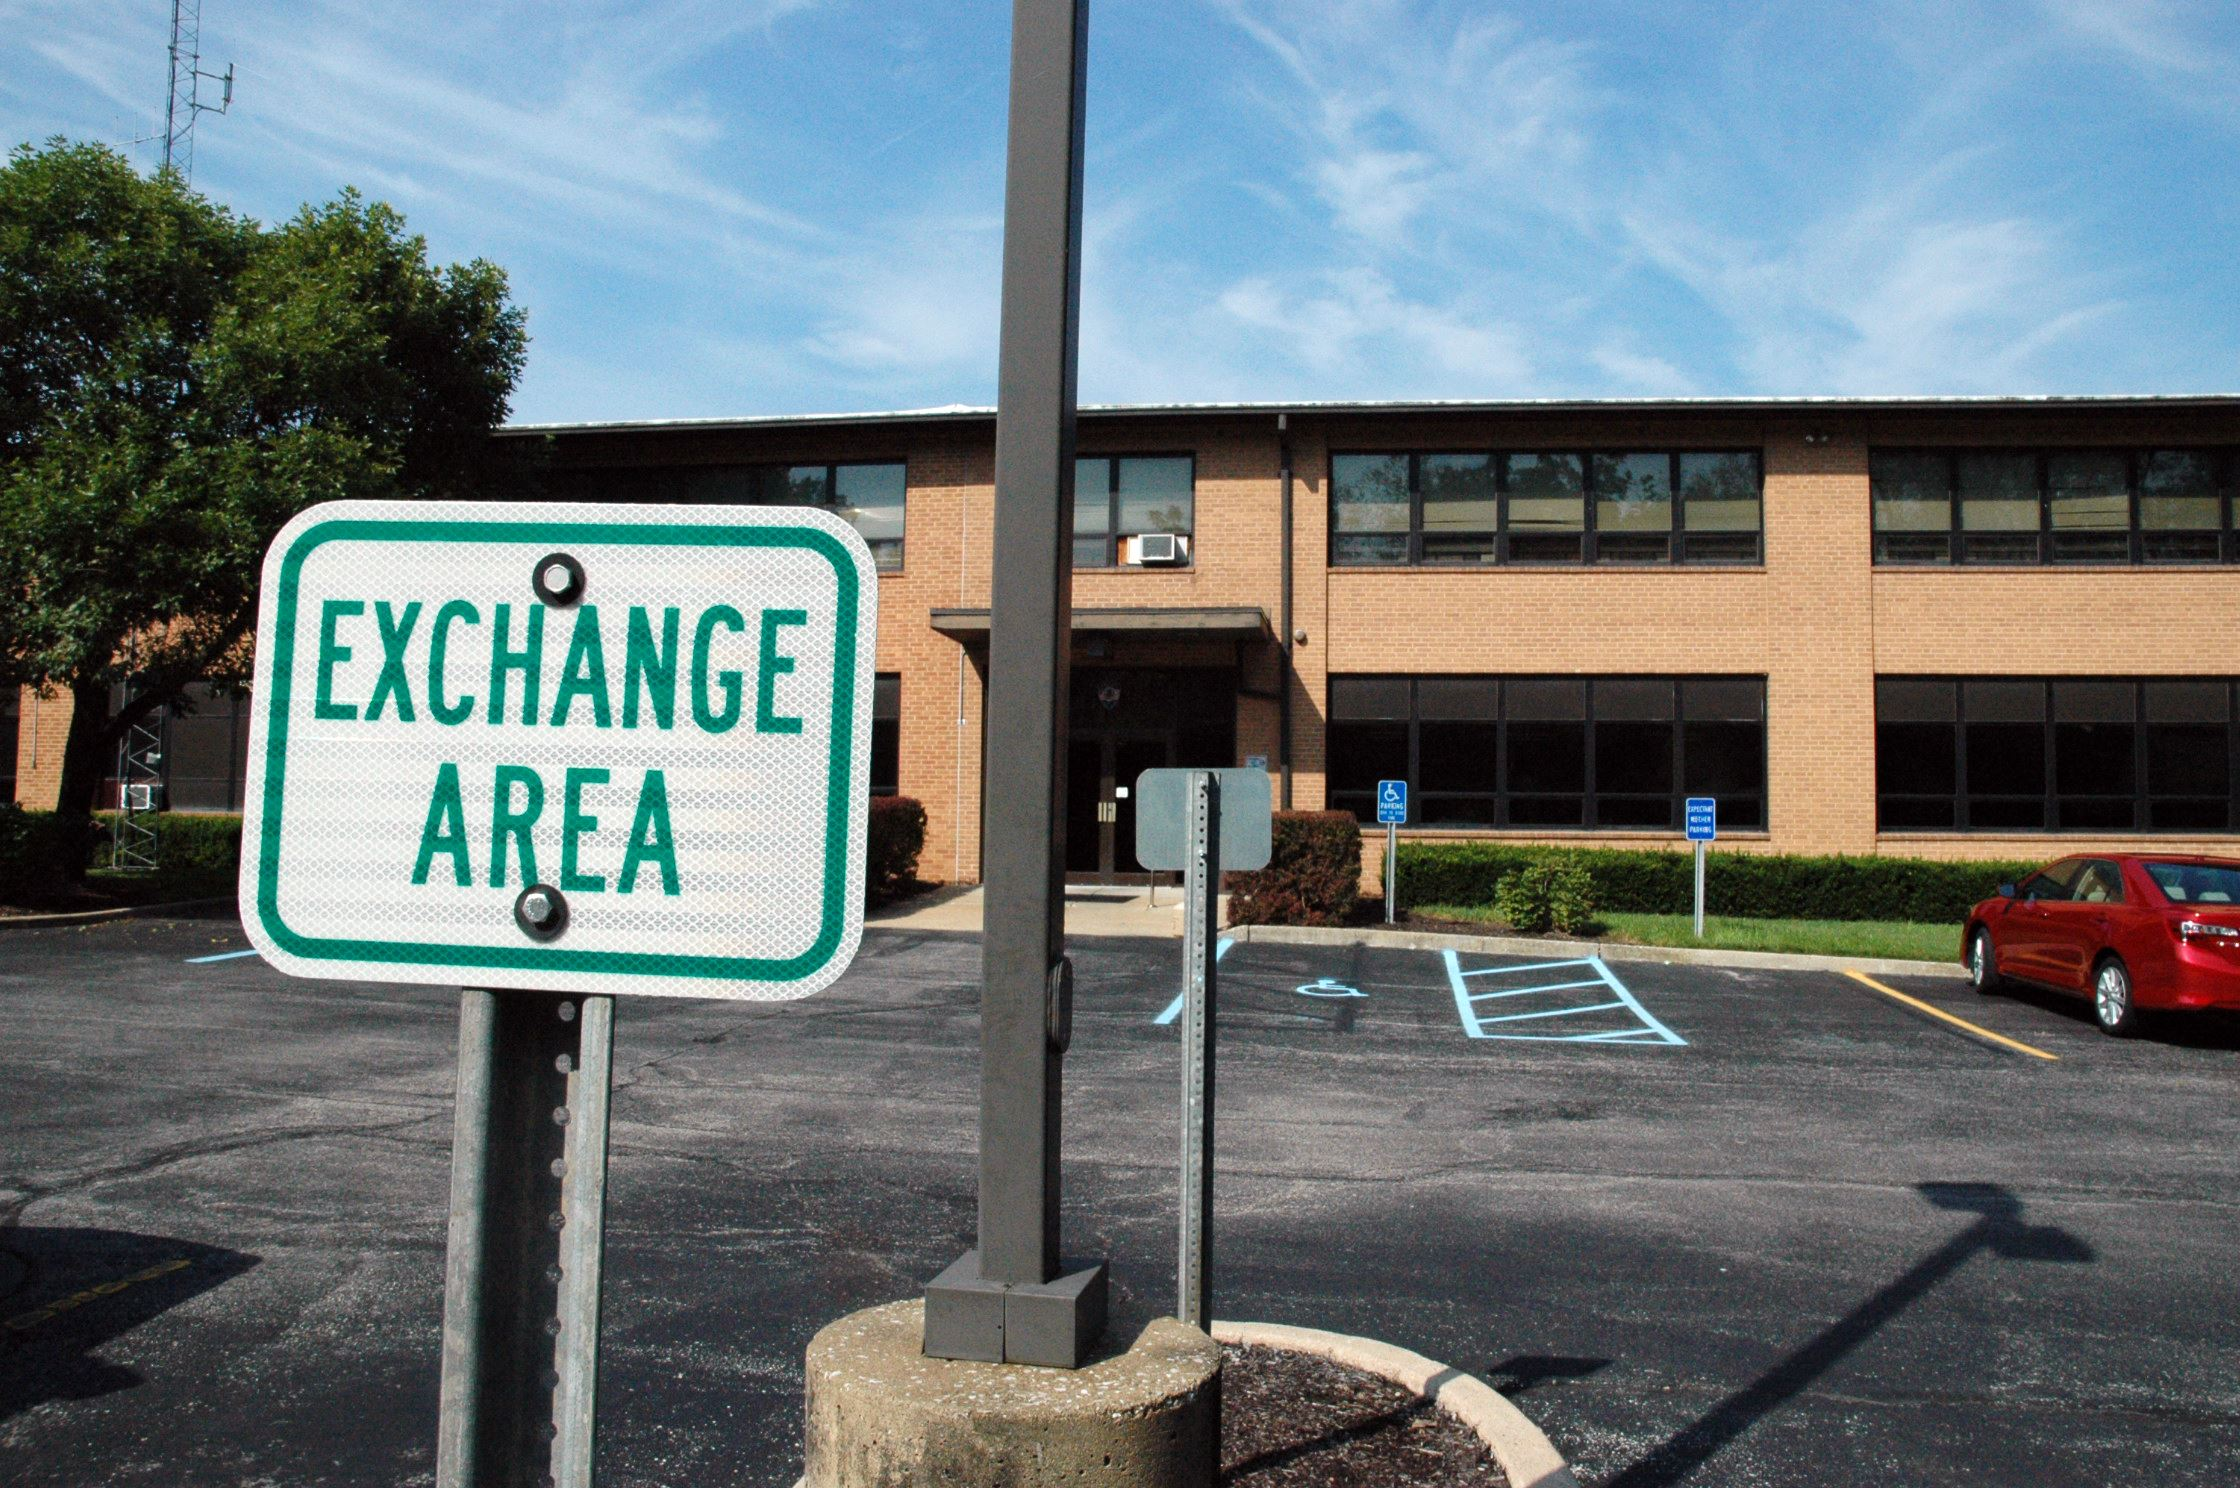 Exchange Location Sign in Parking Lot Outside Rear Entrance of the Creve Coeur Government Center